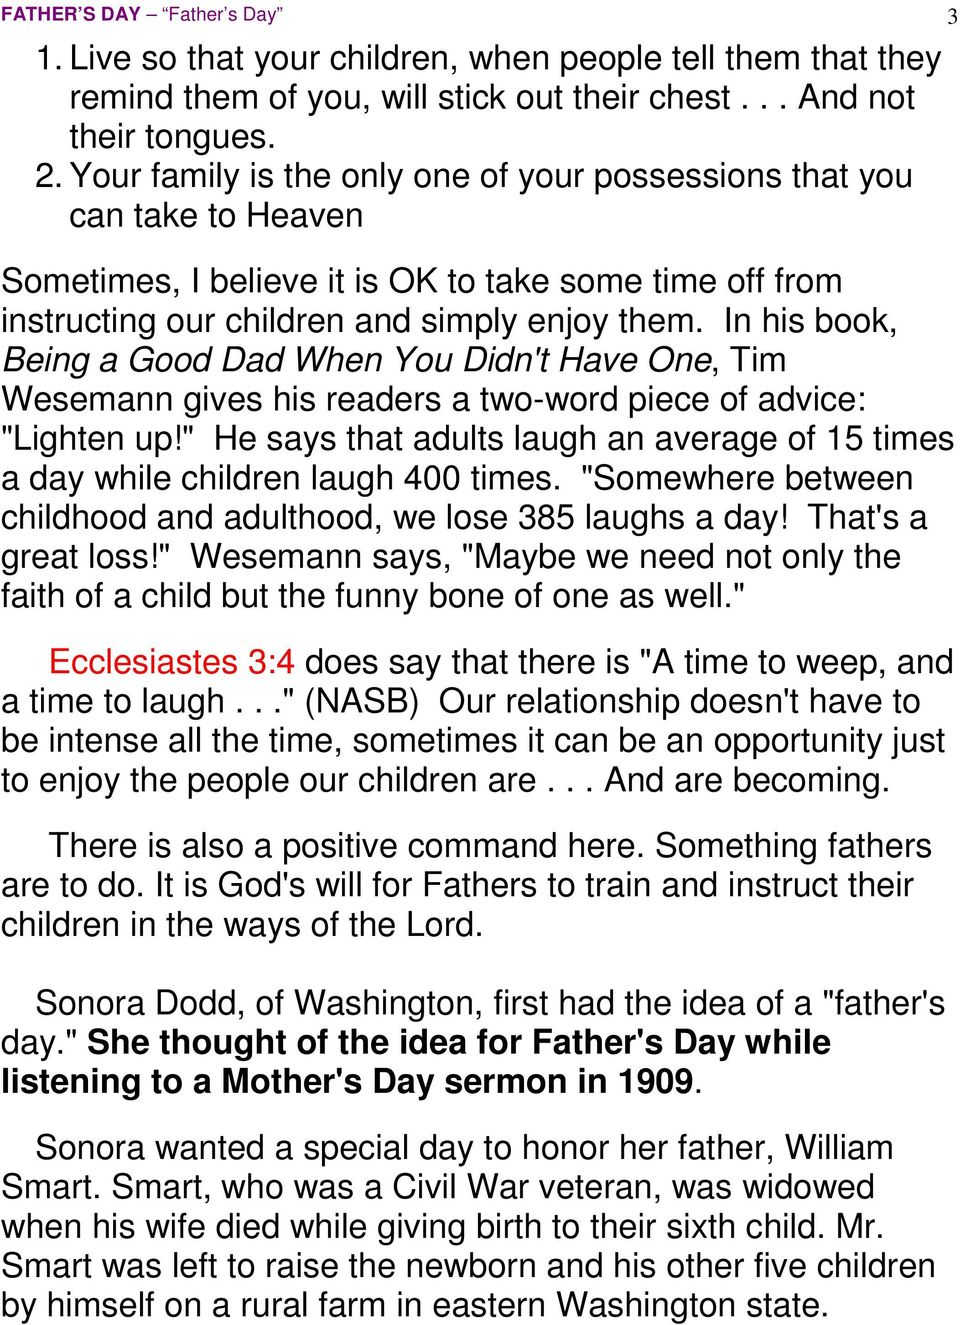 Father s Day  1 Thessalonians 2:11 - PDF